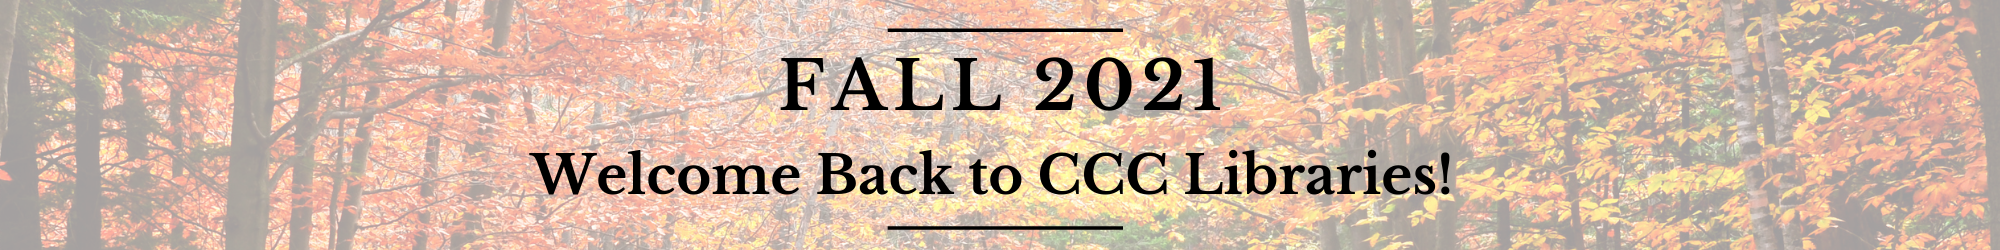 Fall 2021: Welcome Back to CCC Libraries!